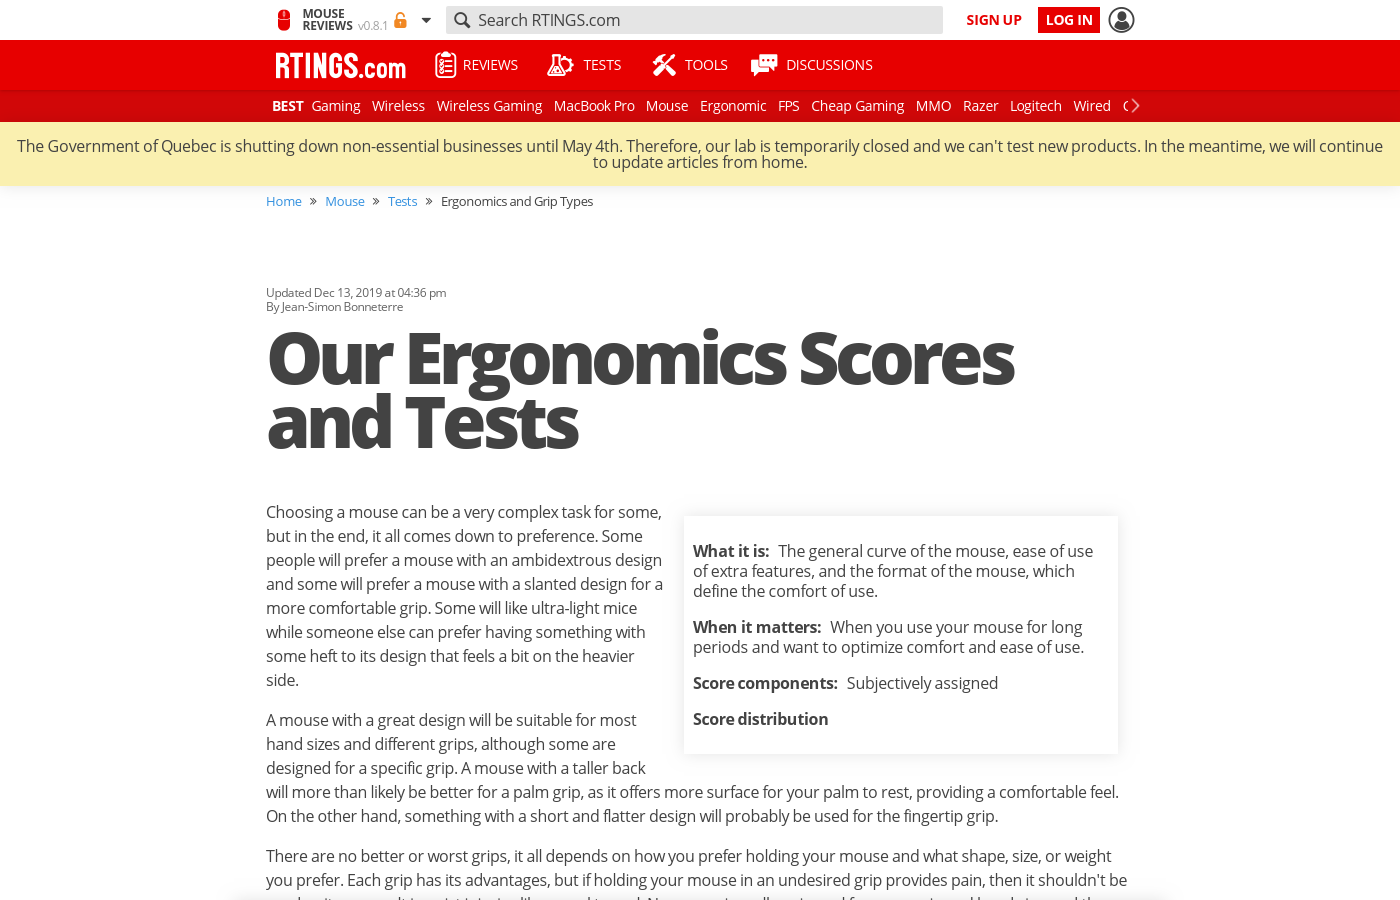 Our Ergonomics Scores and Tests